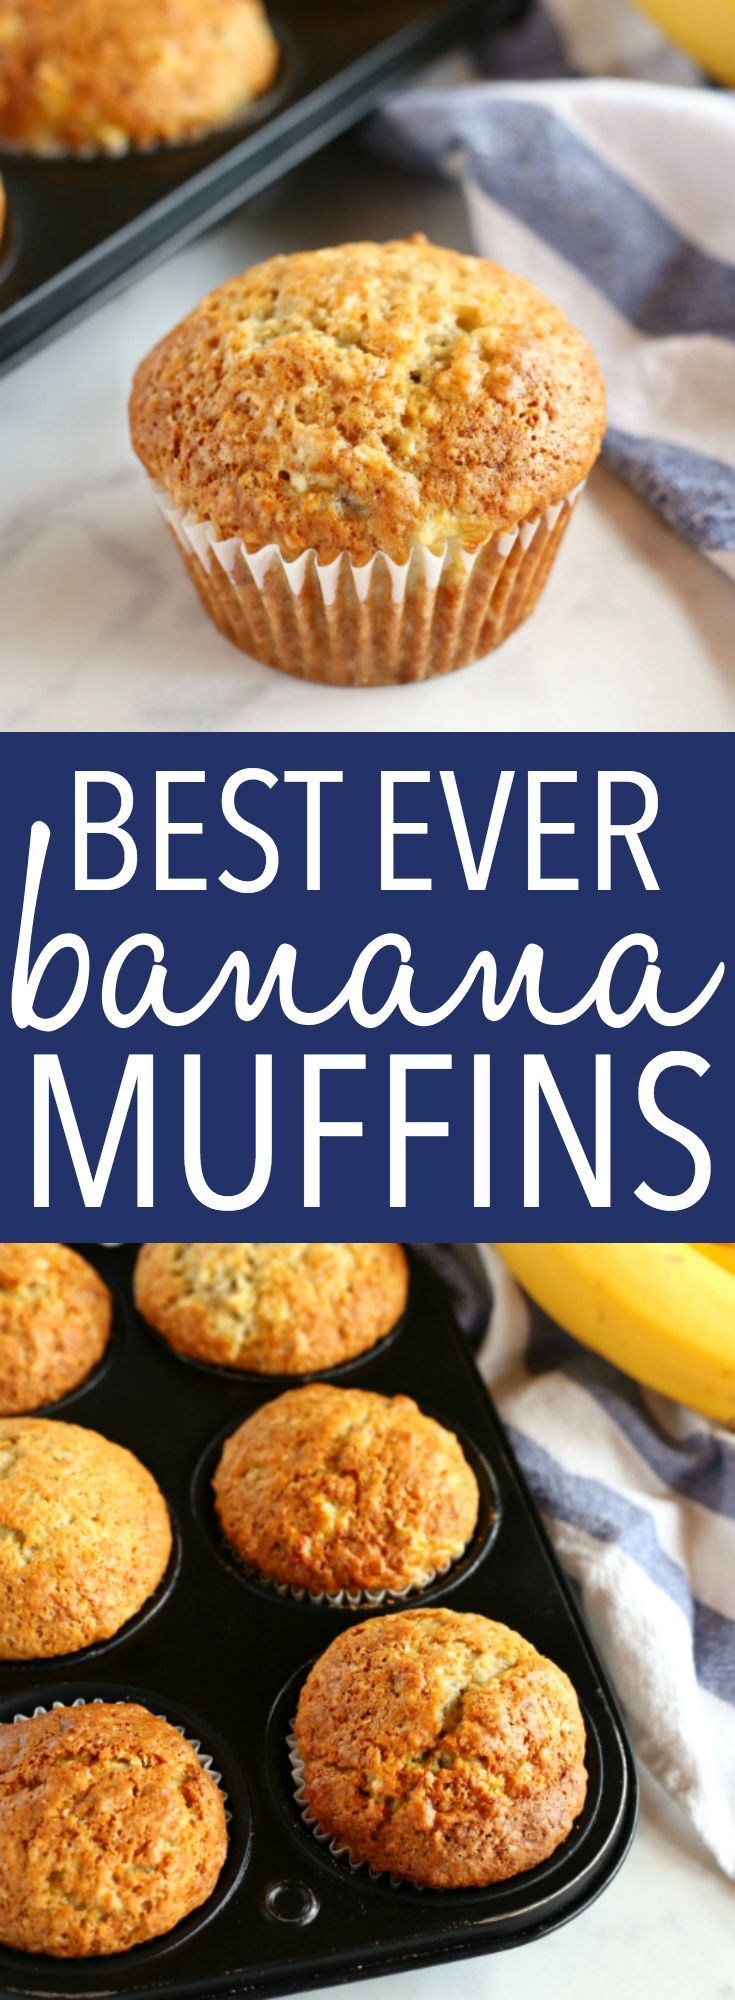 These Best Ever Banana Muffins are the best banana muffins you'll ever try - crispy on the outside and fluffy on the inside! #breakfast #snacks #dessert